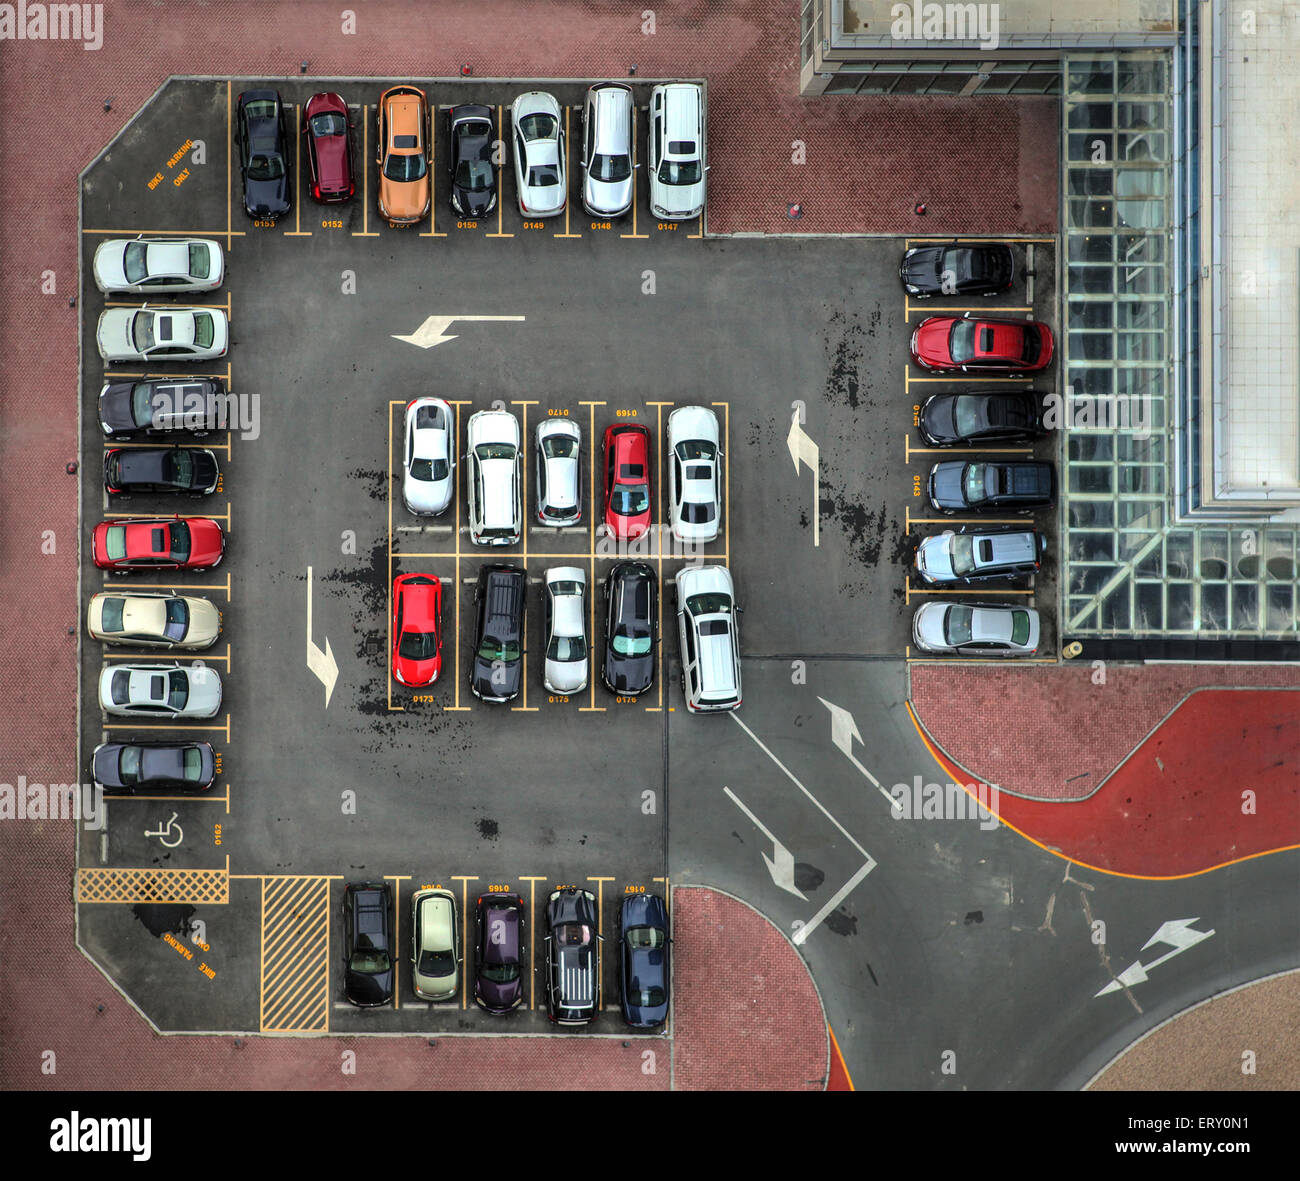 Design A Parking Garage A Perfert Top View Of A Full Car Parking Area With